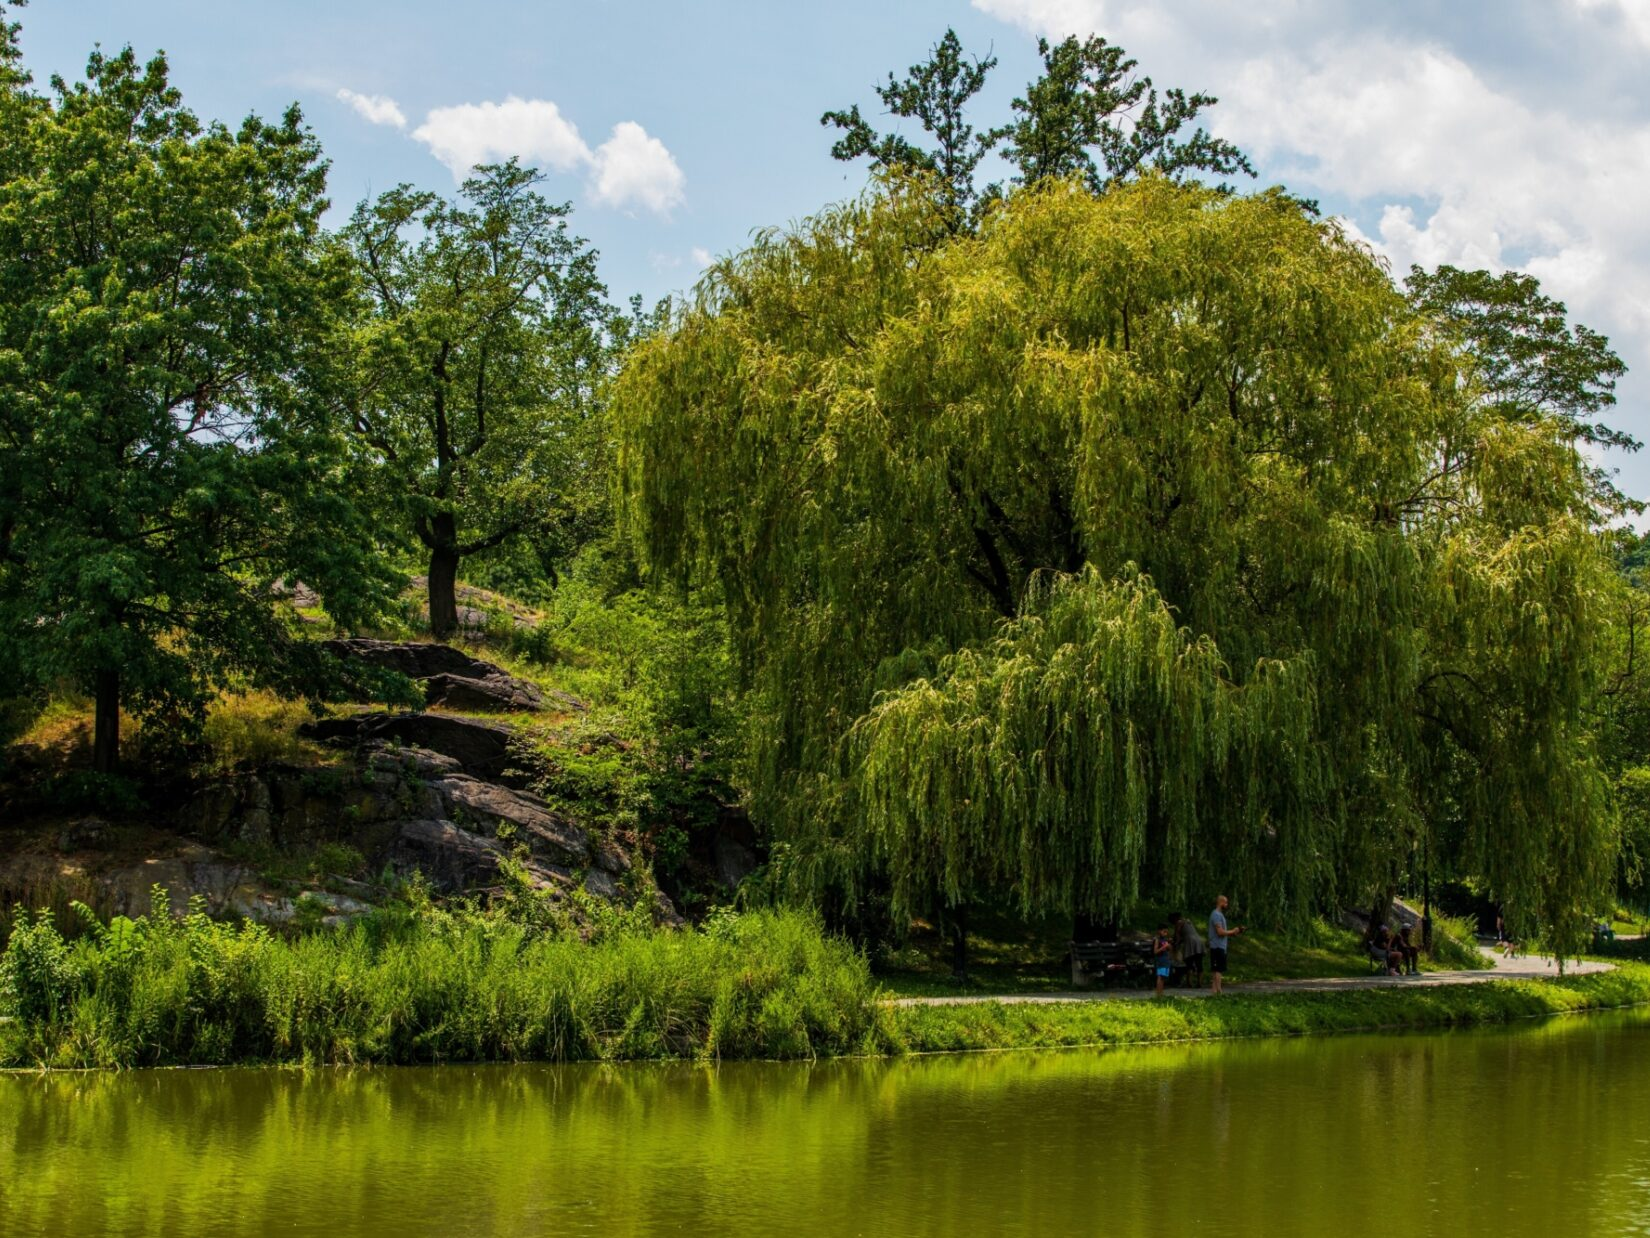 Trees reflected in the Harlem Meer